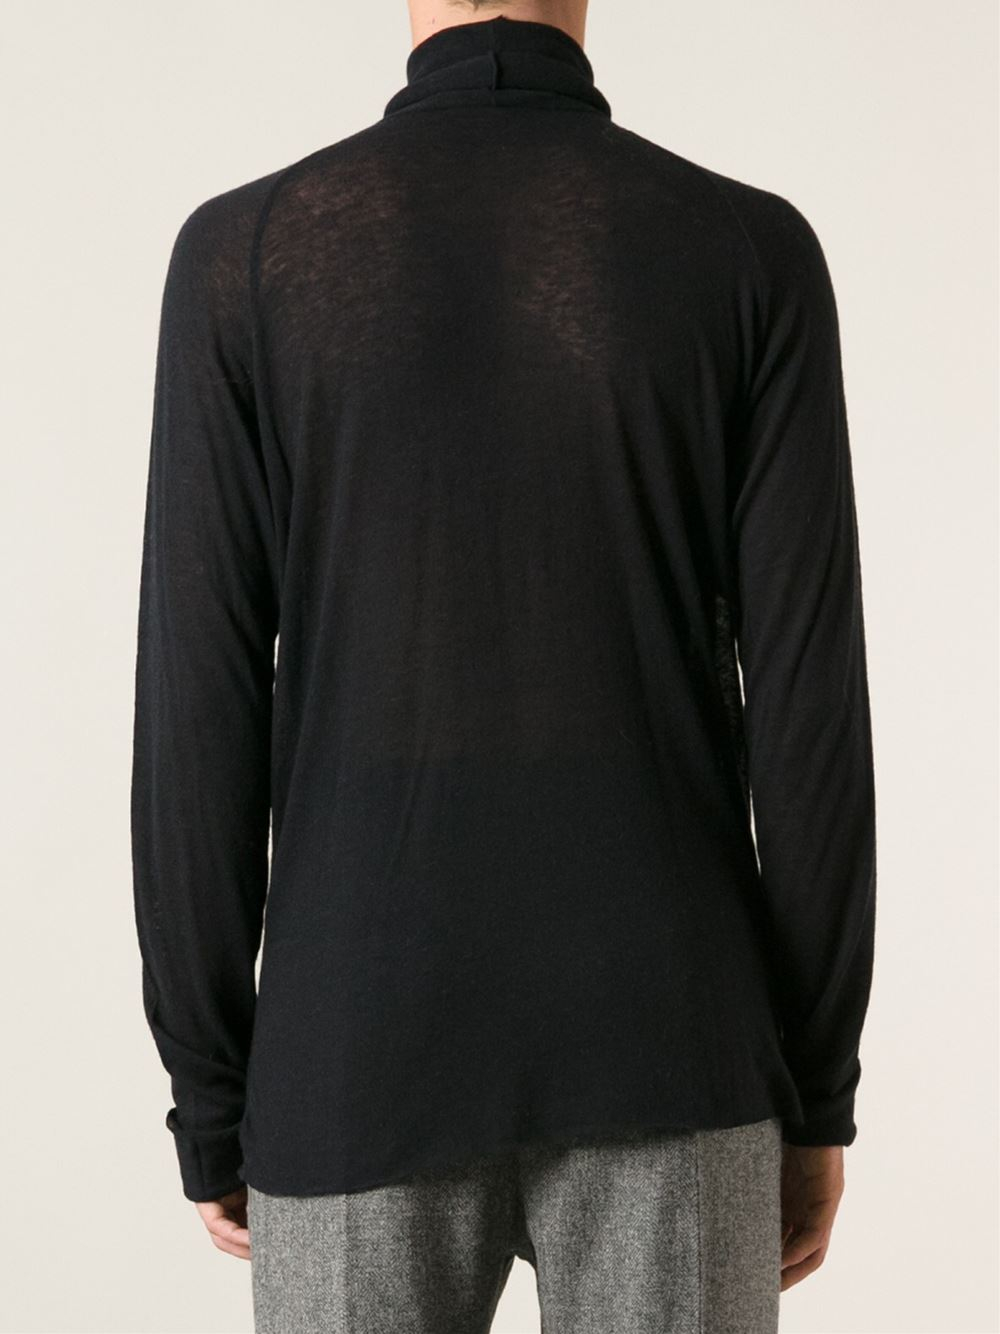 haider ackermann sforza sheer sweater in black for men lyst. Black Bedroom Furniture Sets. Home Design Ideas